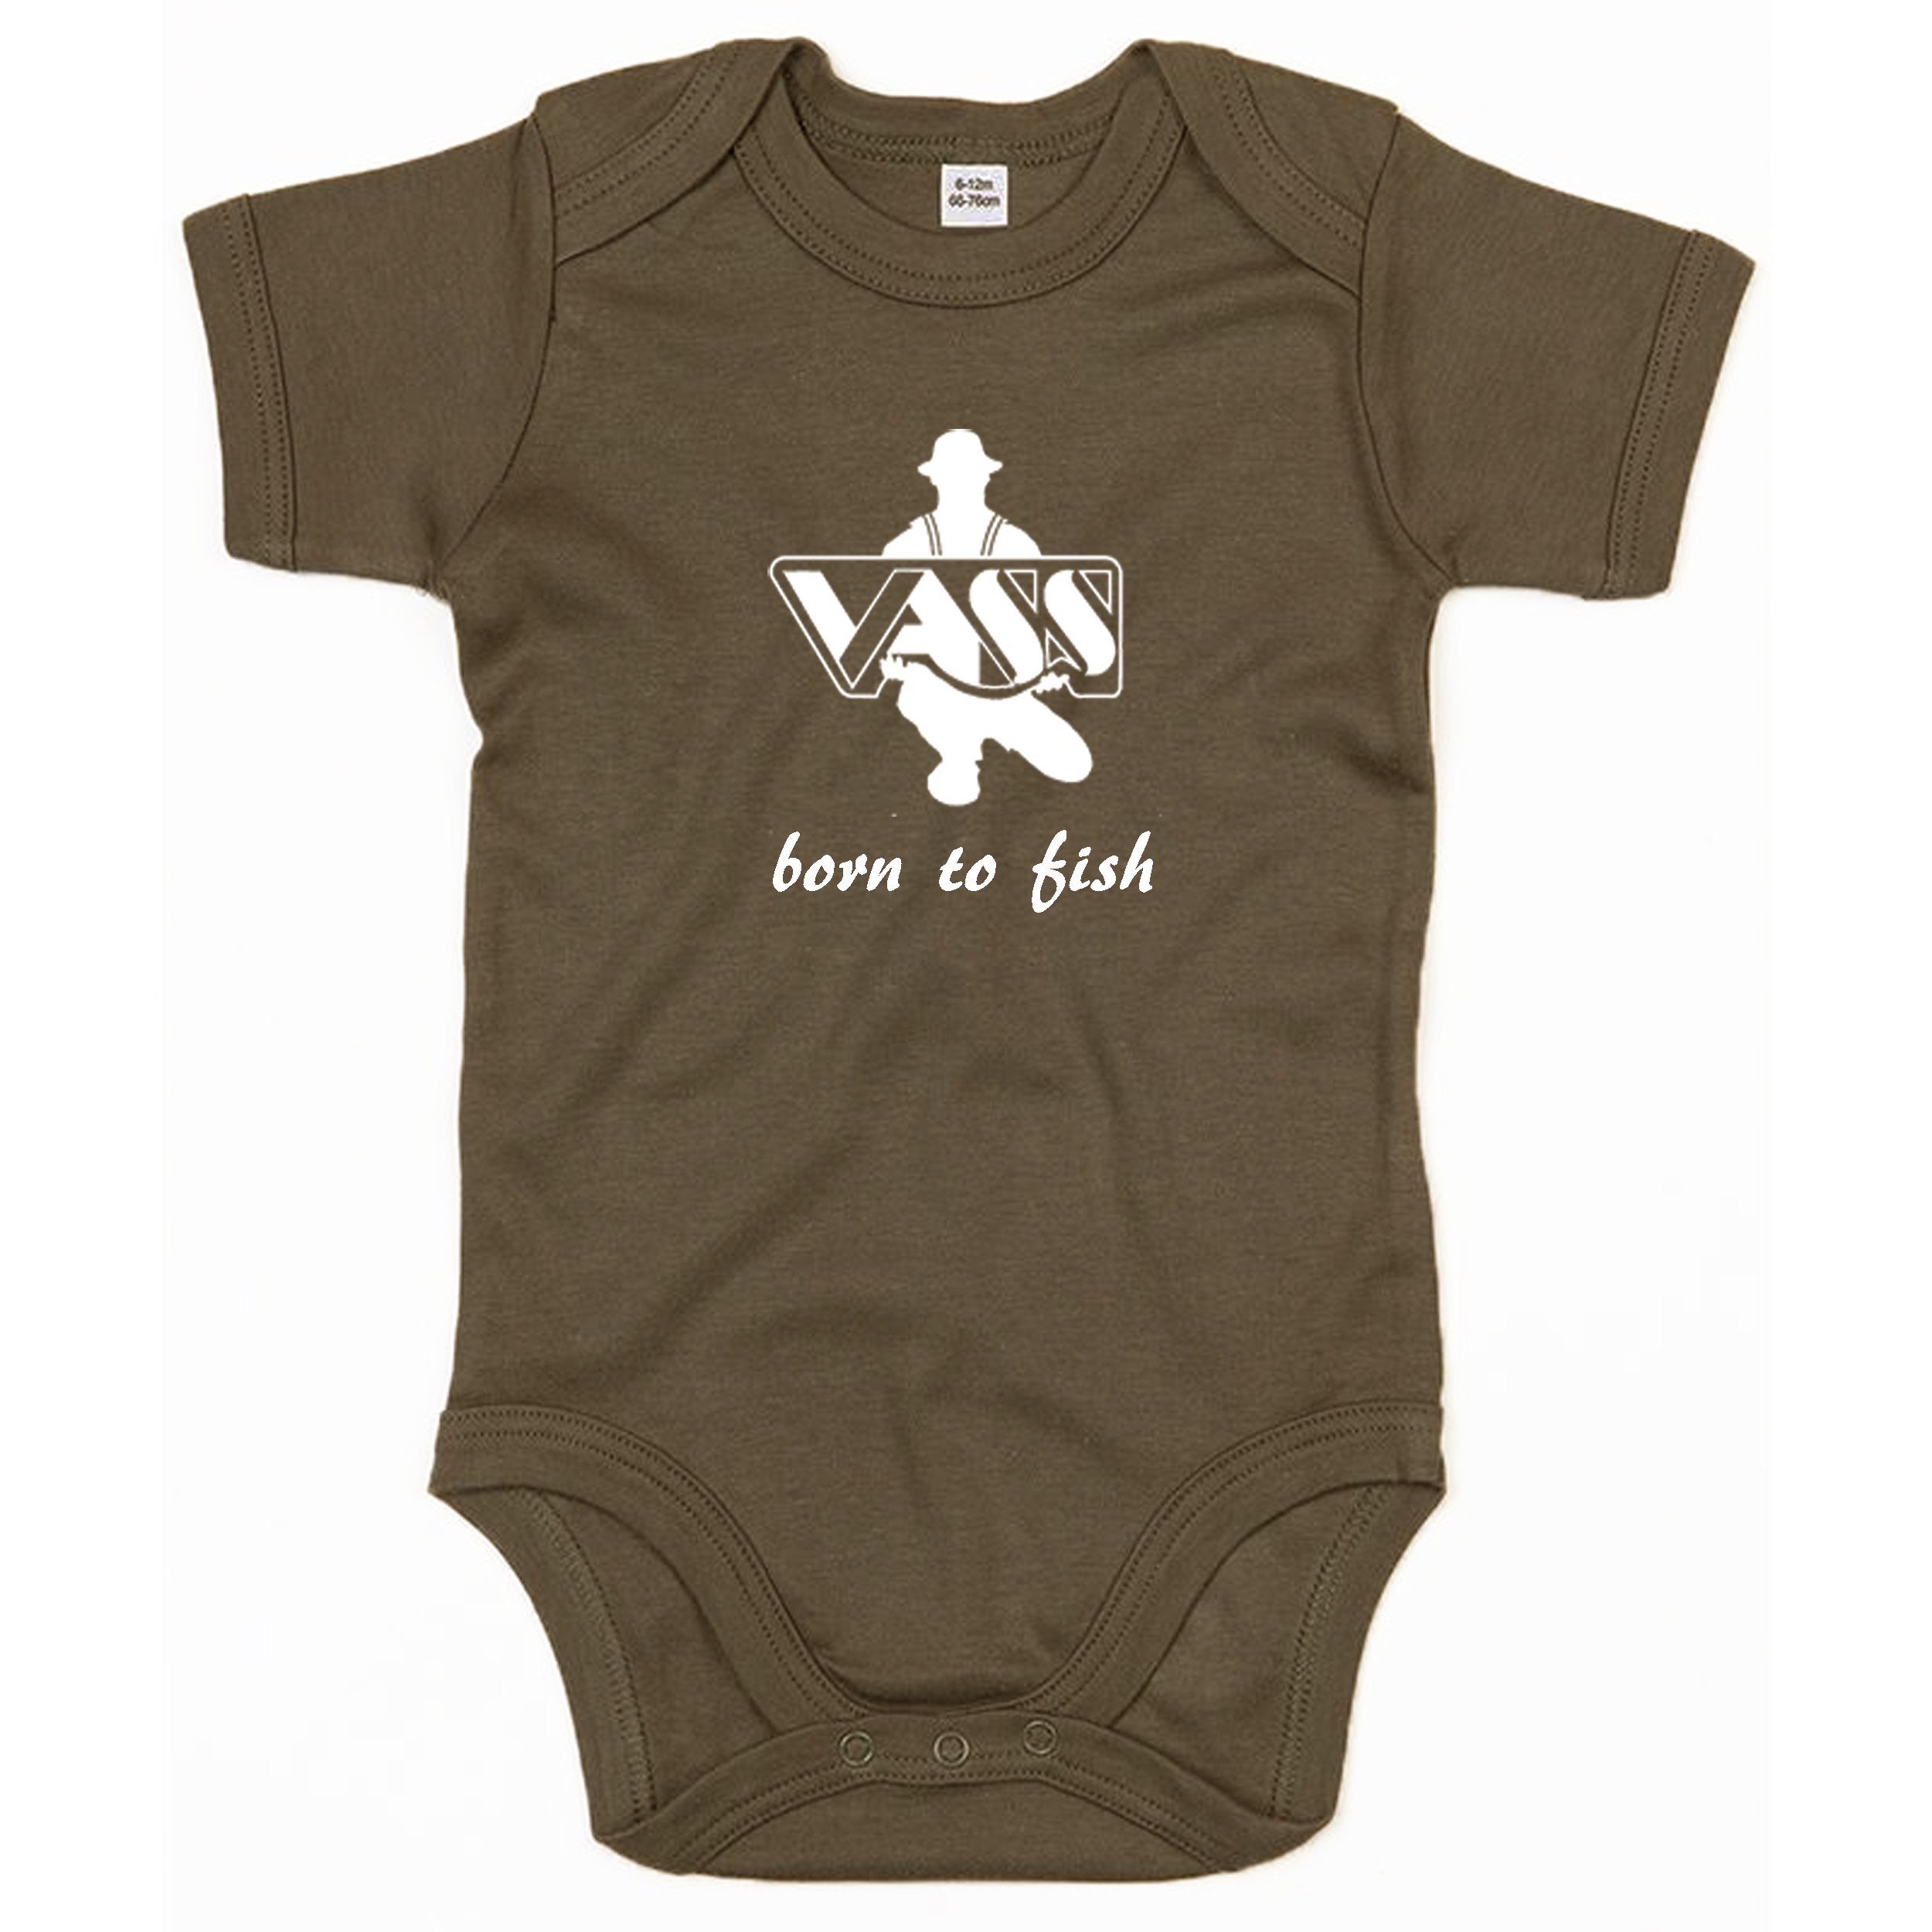 Vass V010 Vass born to fish baby Grow -